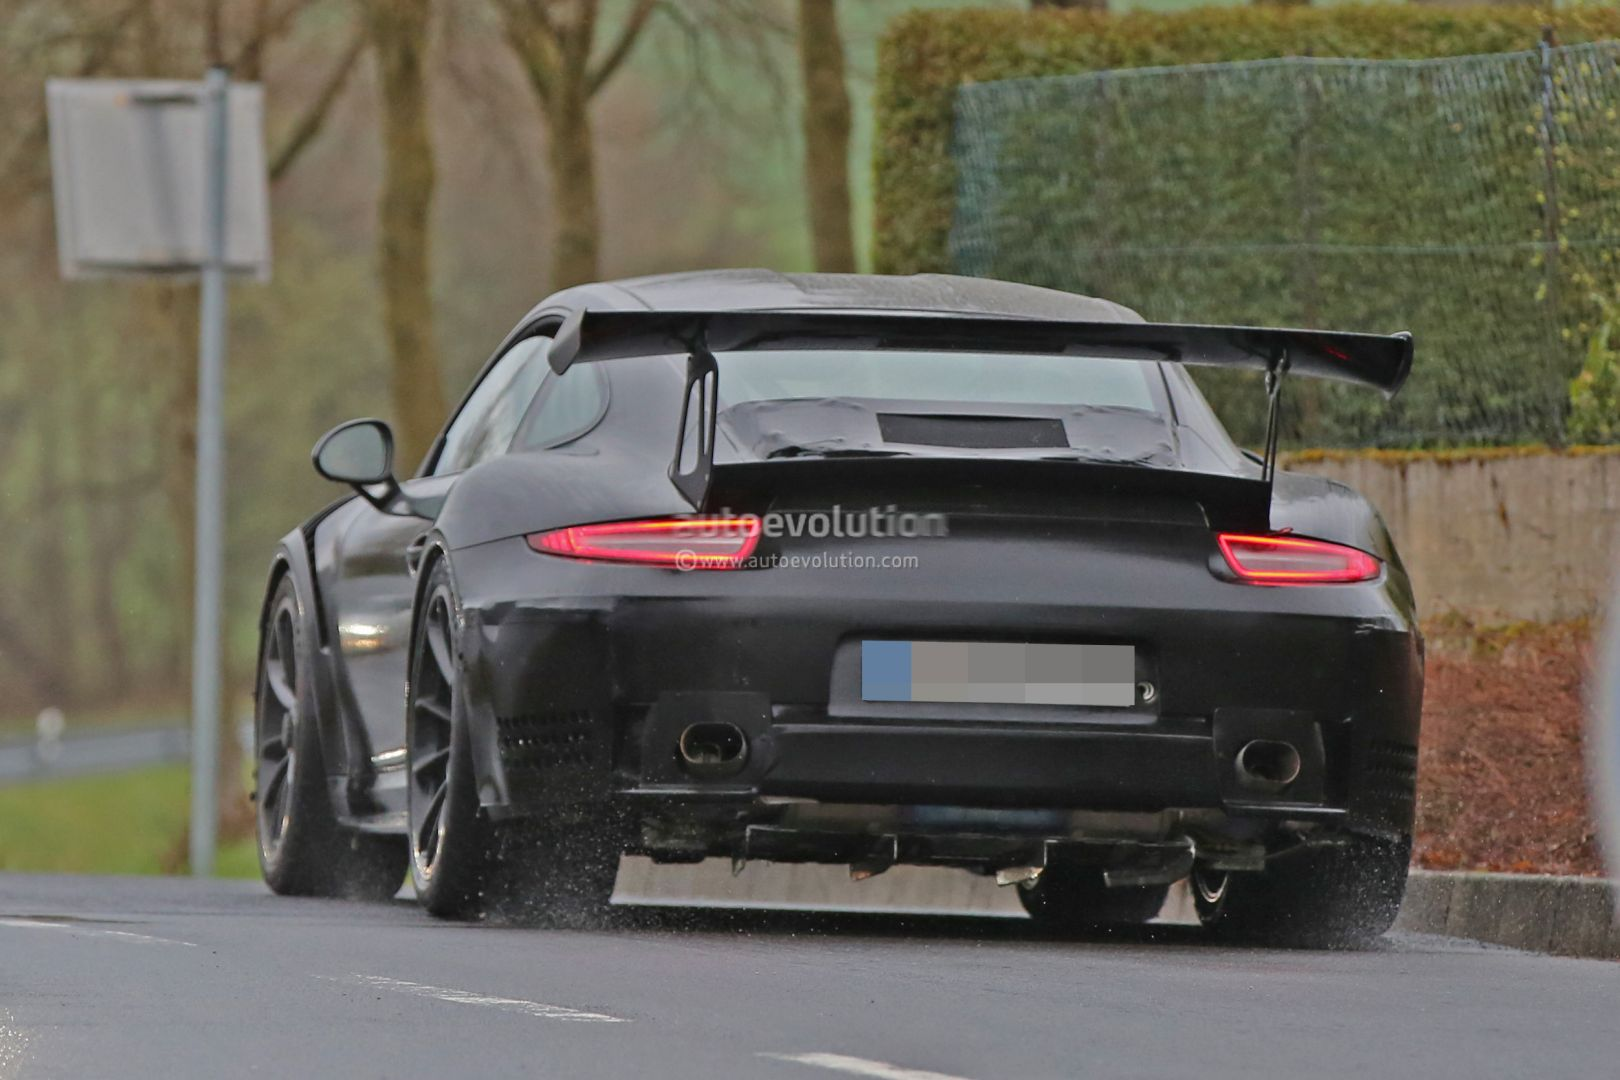 2018 Porsche 911 GT3 RS 4.0 is out testing what appears to be a more ...